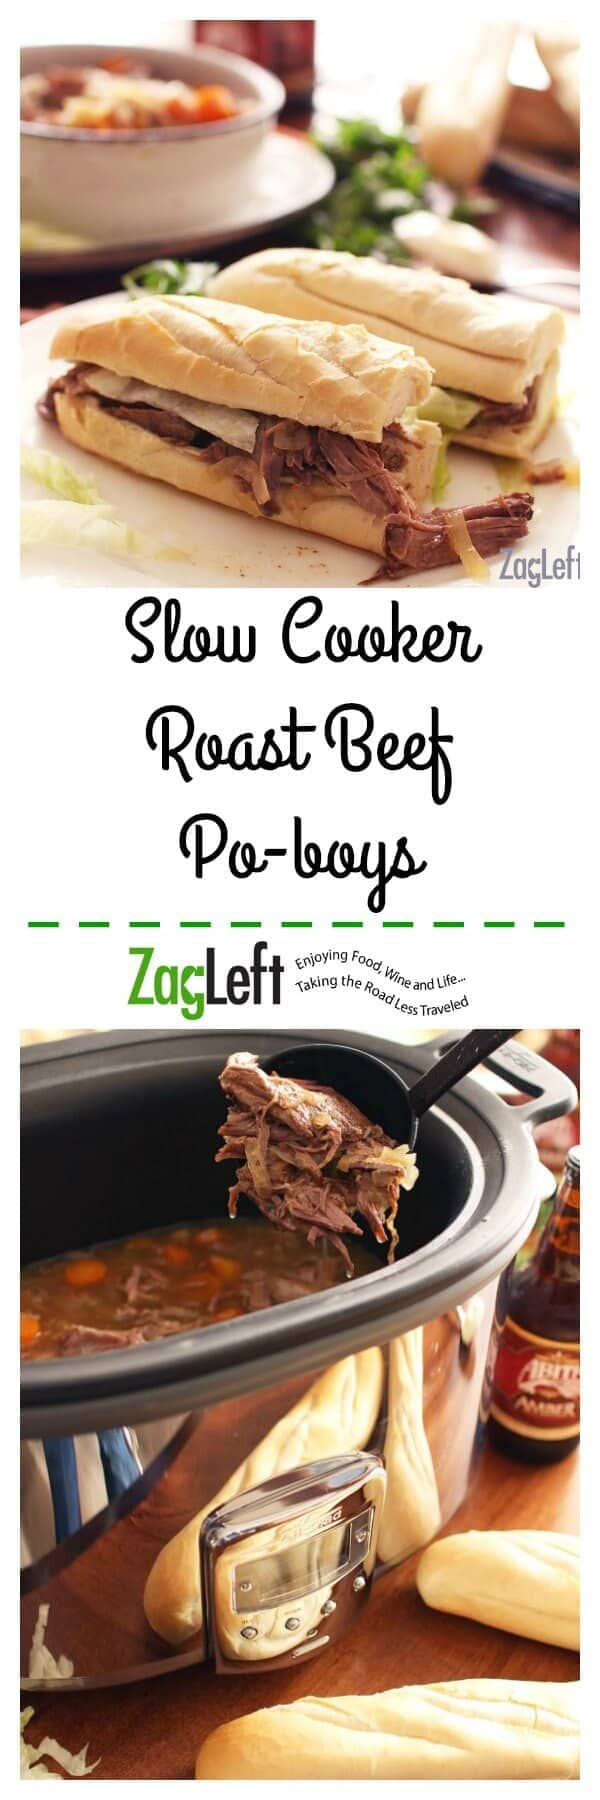 Roast Beef Po-boys - crusty french bread stuffed with juicy, fall-apart tender roast beef that's been slow cooking for hours, topped with lettuce, mayonnaise and lots of gravy. Good and sloppy, just like they make 'em in New Orleans.   www.zagleft.com